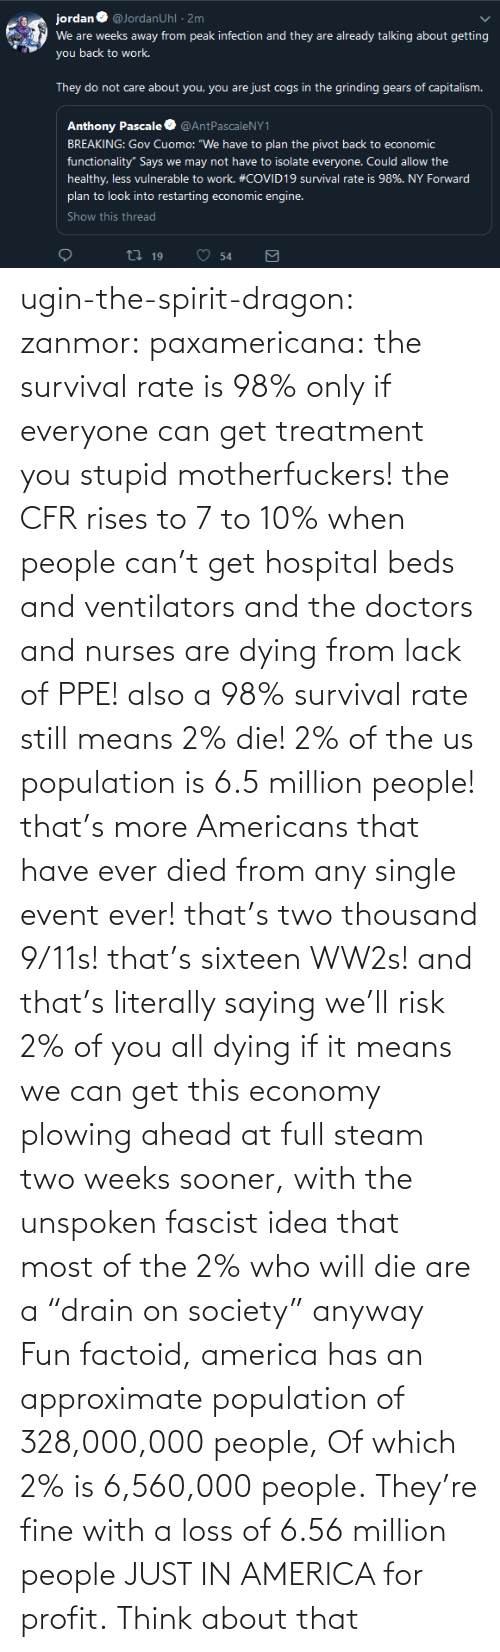 "Can Get: ugin-the-spirit-dragon: zanmor:   paxamericana:  the survival rate is 98% only if everyone can get treatment you stupid motherfuckers! the CFR rises to 7 to 10% when people can't get hospital beds and ventilators and the doctors and nurses are dying from lack of PPE!  also a 98% survival rate still means 2% die! 2% of the us population is 6.5 million people! that's more Americans that have ever died from any single event ever! that's two thousand 9/11s! that's sixteen WW2s!  and that's literally saying we'll risk 2% of you all dying if it means we can get this economy plowing ahead at full steam two weeks sooner, with the unspoken fascist idea that most of the 2% who will die are a ""drain on society"" anyway    Fun factoid, america has an approximate population of 328,000,000 people,  Of which 2% is 6,560,000 people. They're fine with a loss of 6.56 million people JUST IN AMERICA for profit. Think about that"